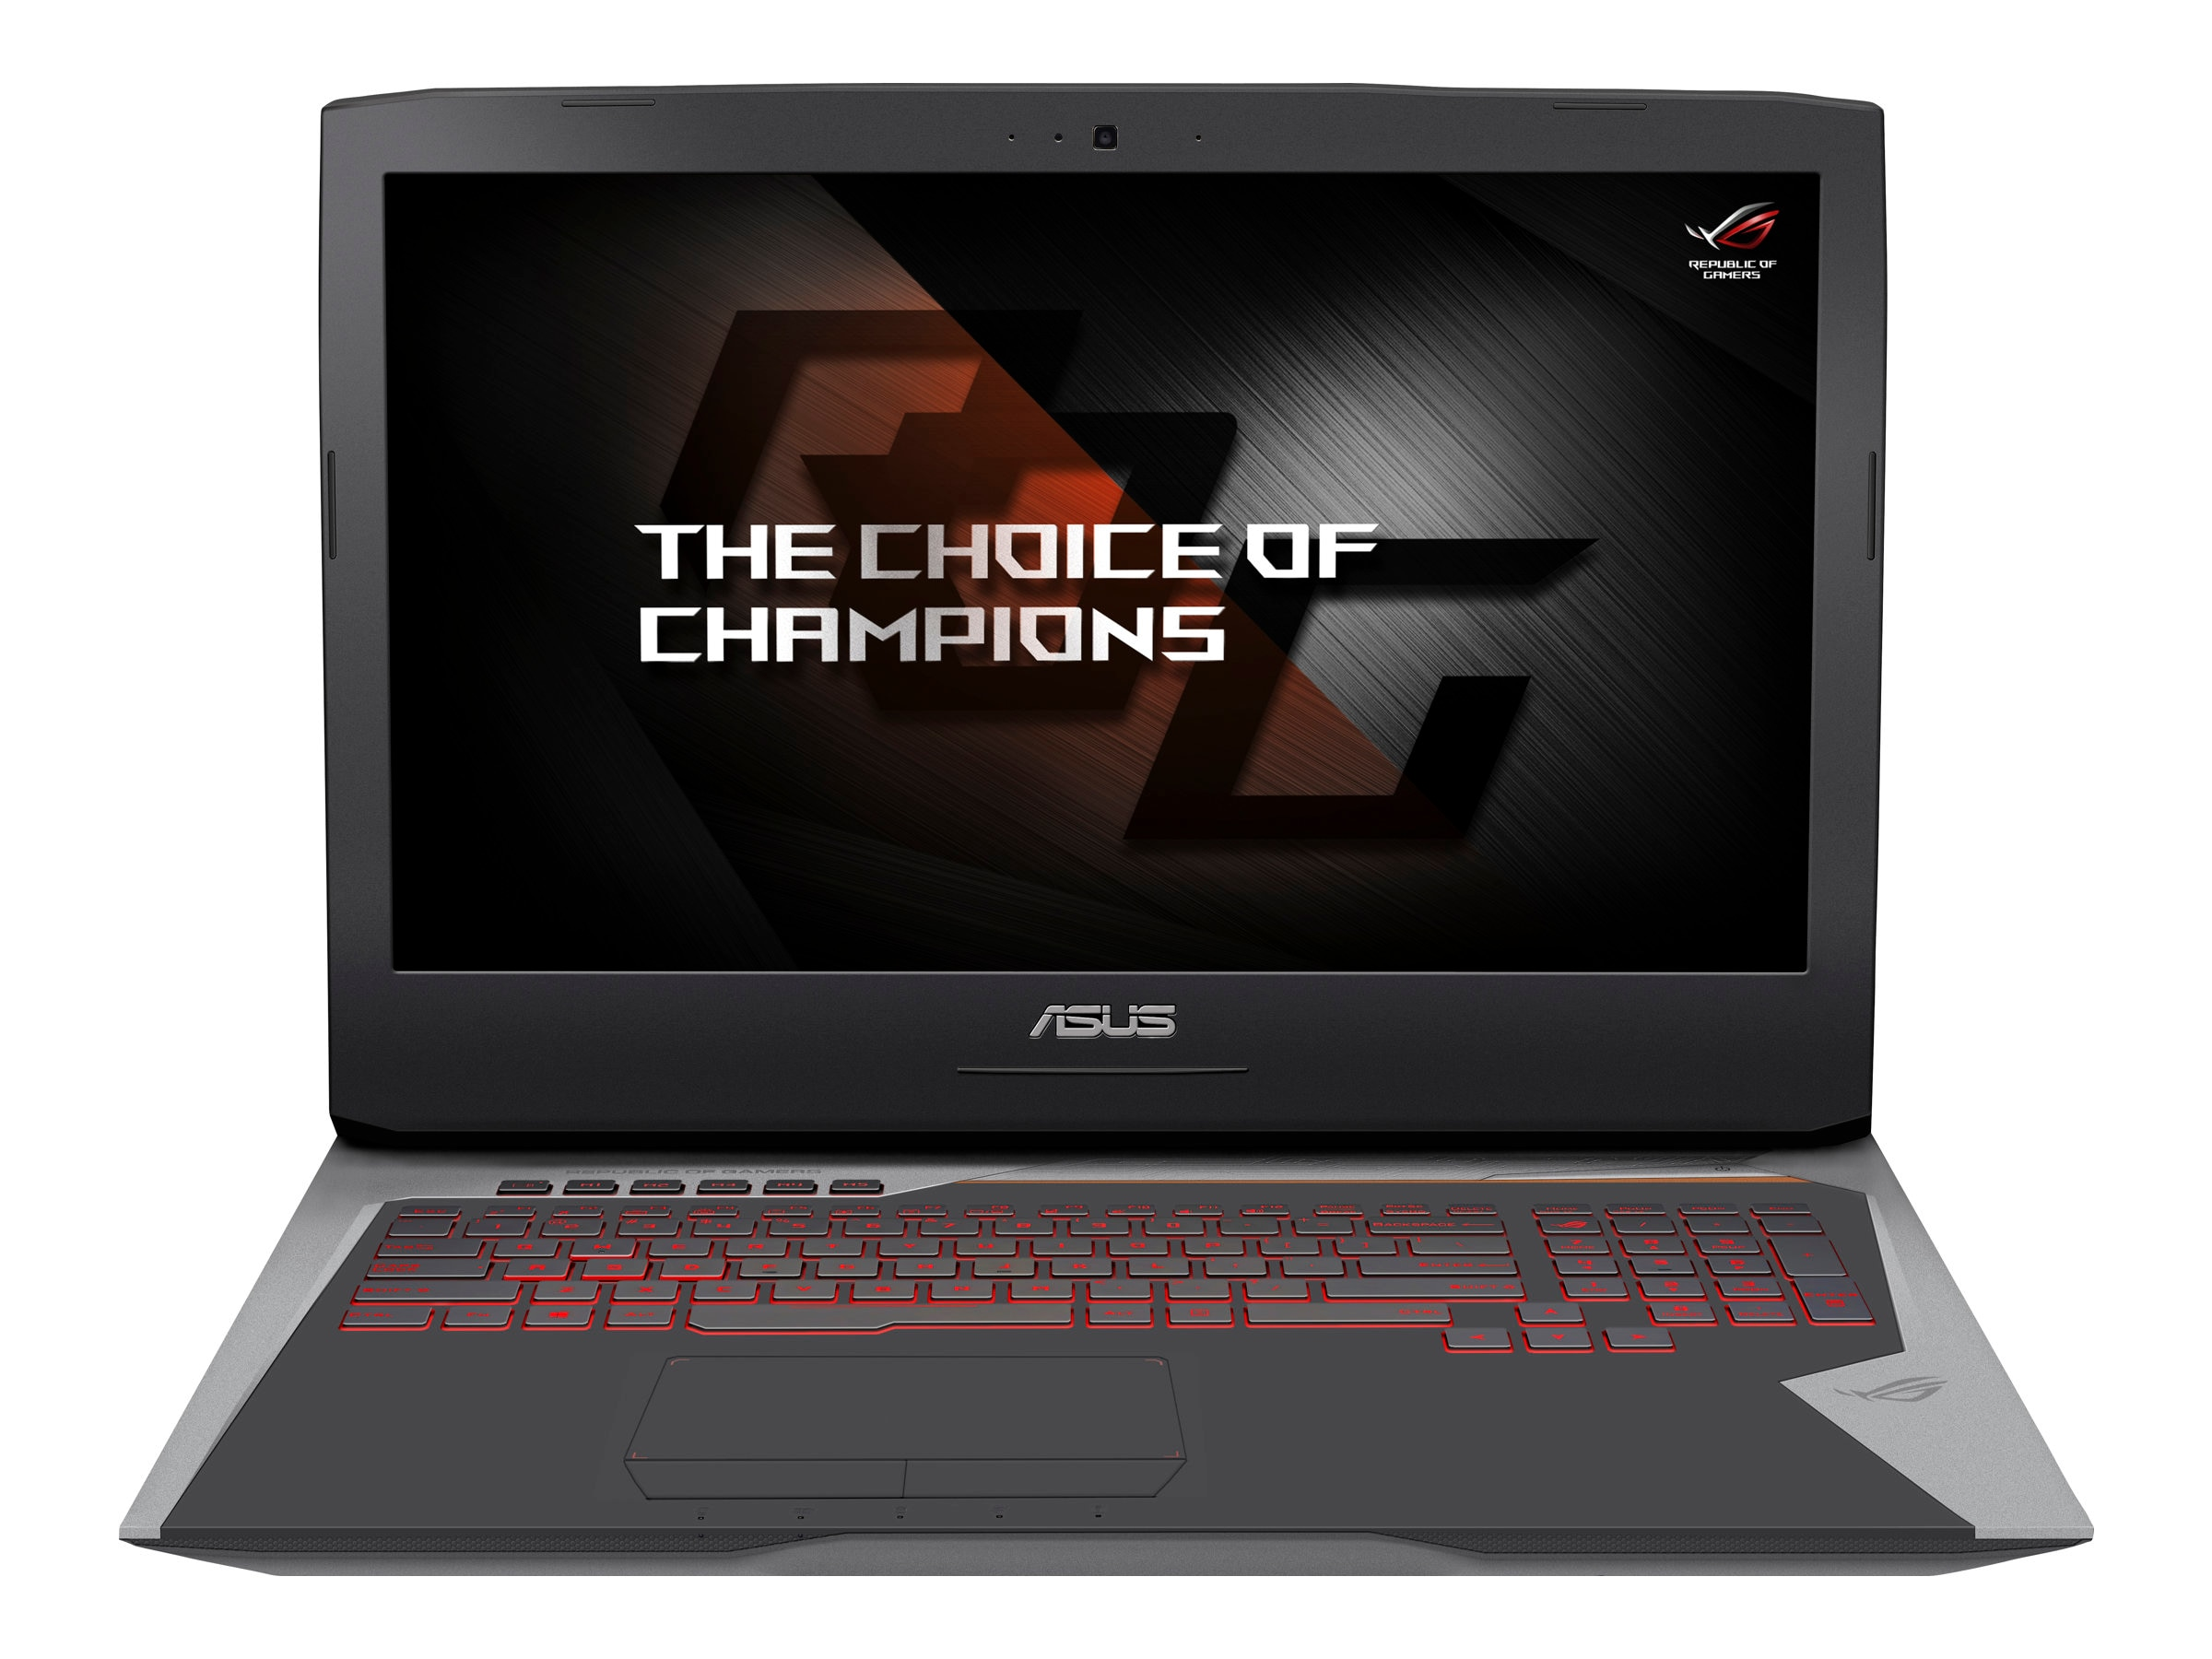 Asus G752VS-RB71 Image 4